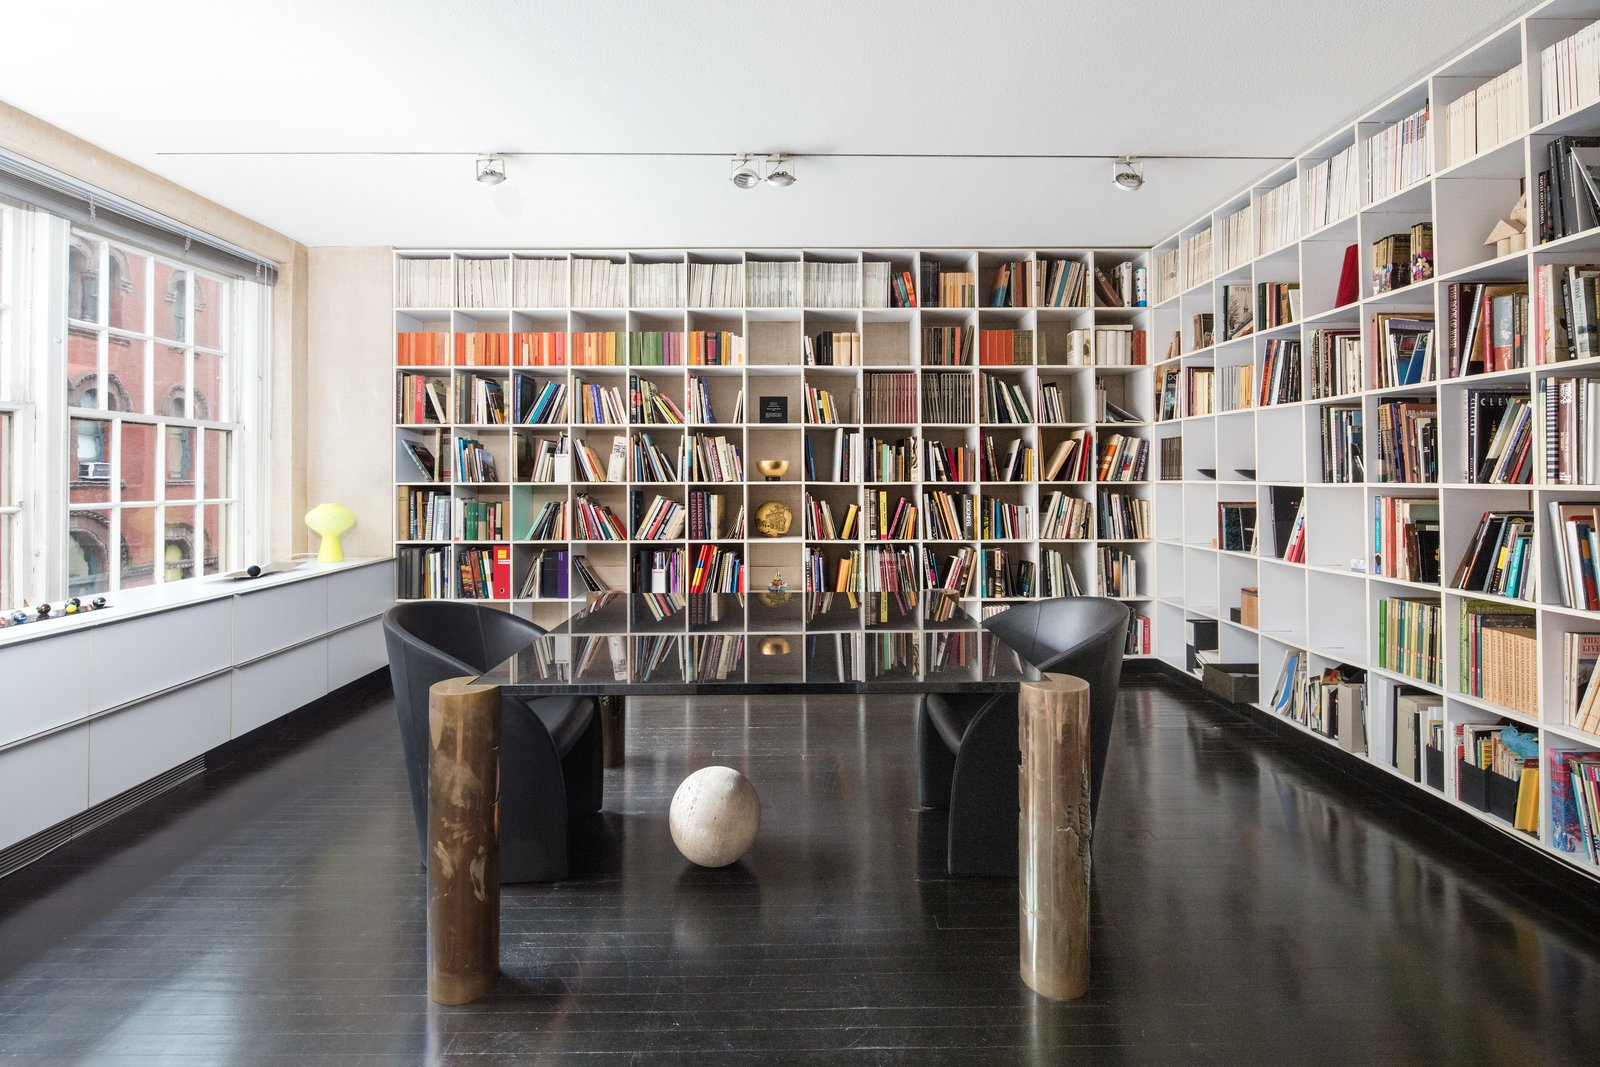 Lella Vignelli's office is lined with bookshelves. She designed the desk with legs fashioned by sculptor Arnaldo Pomodoro. The couple were known to host many cultural luminaries in the apartment, including Pomodoro and philosopher Umberto Eco.